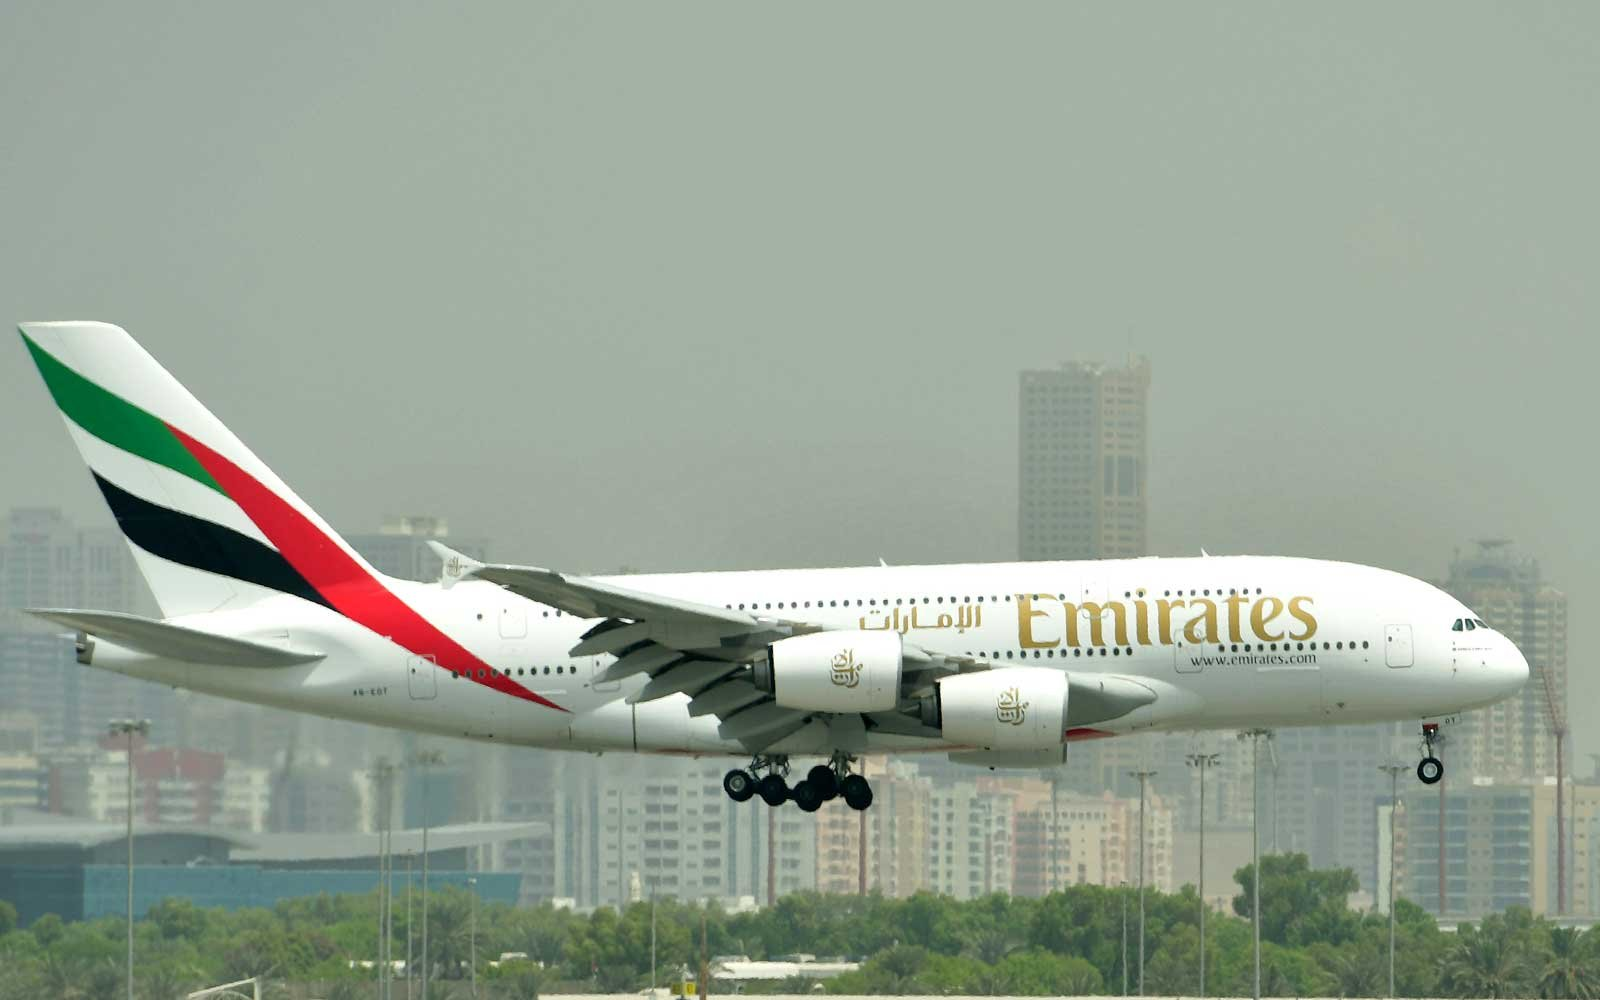 Emirates throws Airbus A380 a lifeline with $21 billion deal